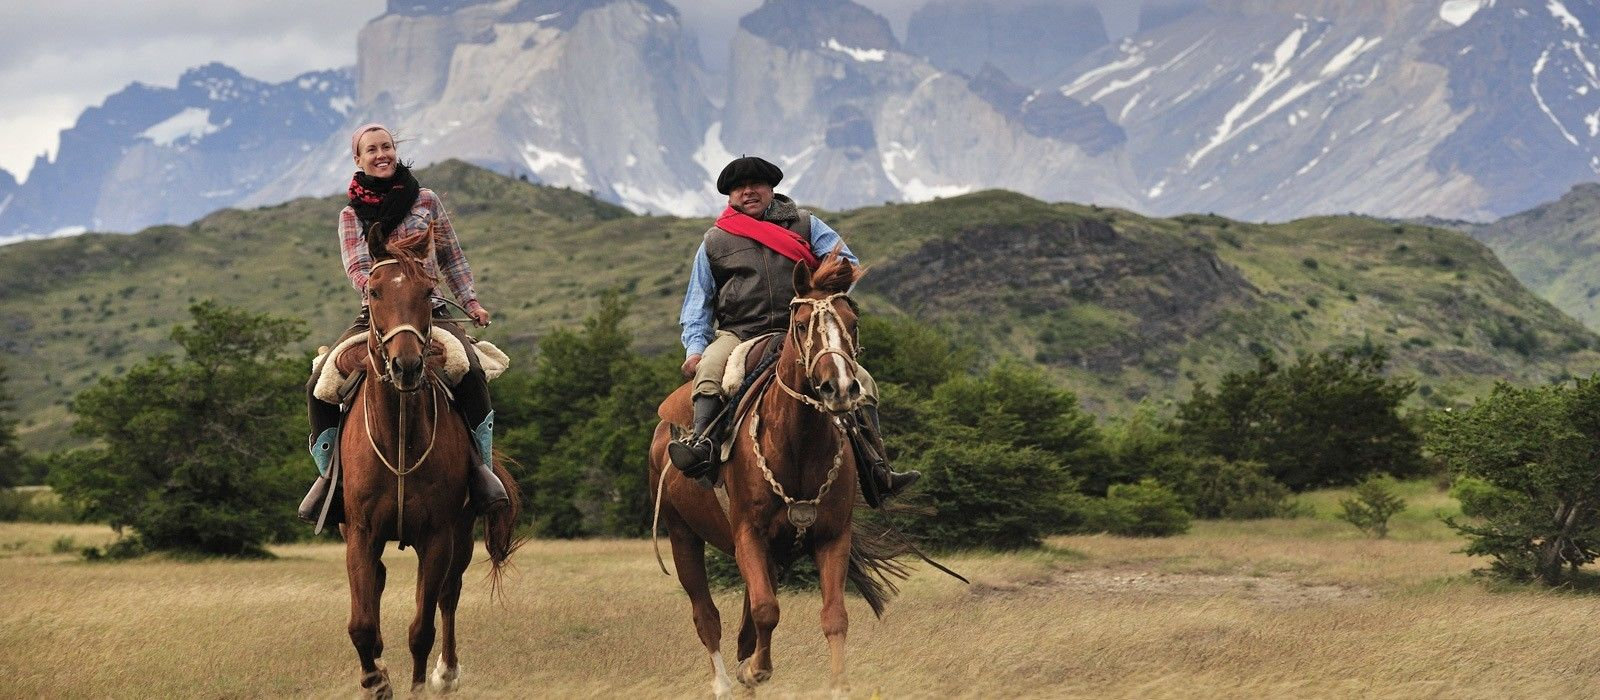 Chile: The Tierra Experience Tour Trip 2